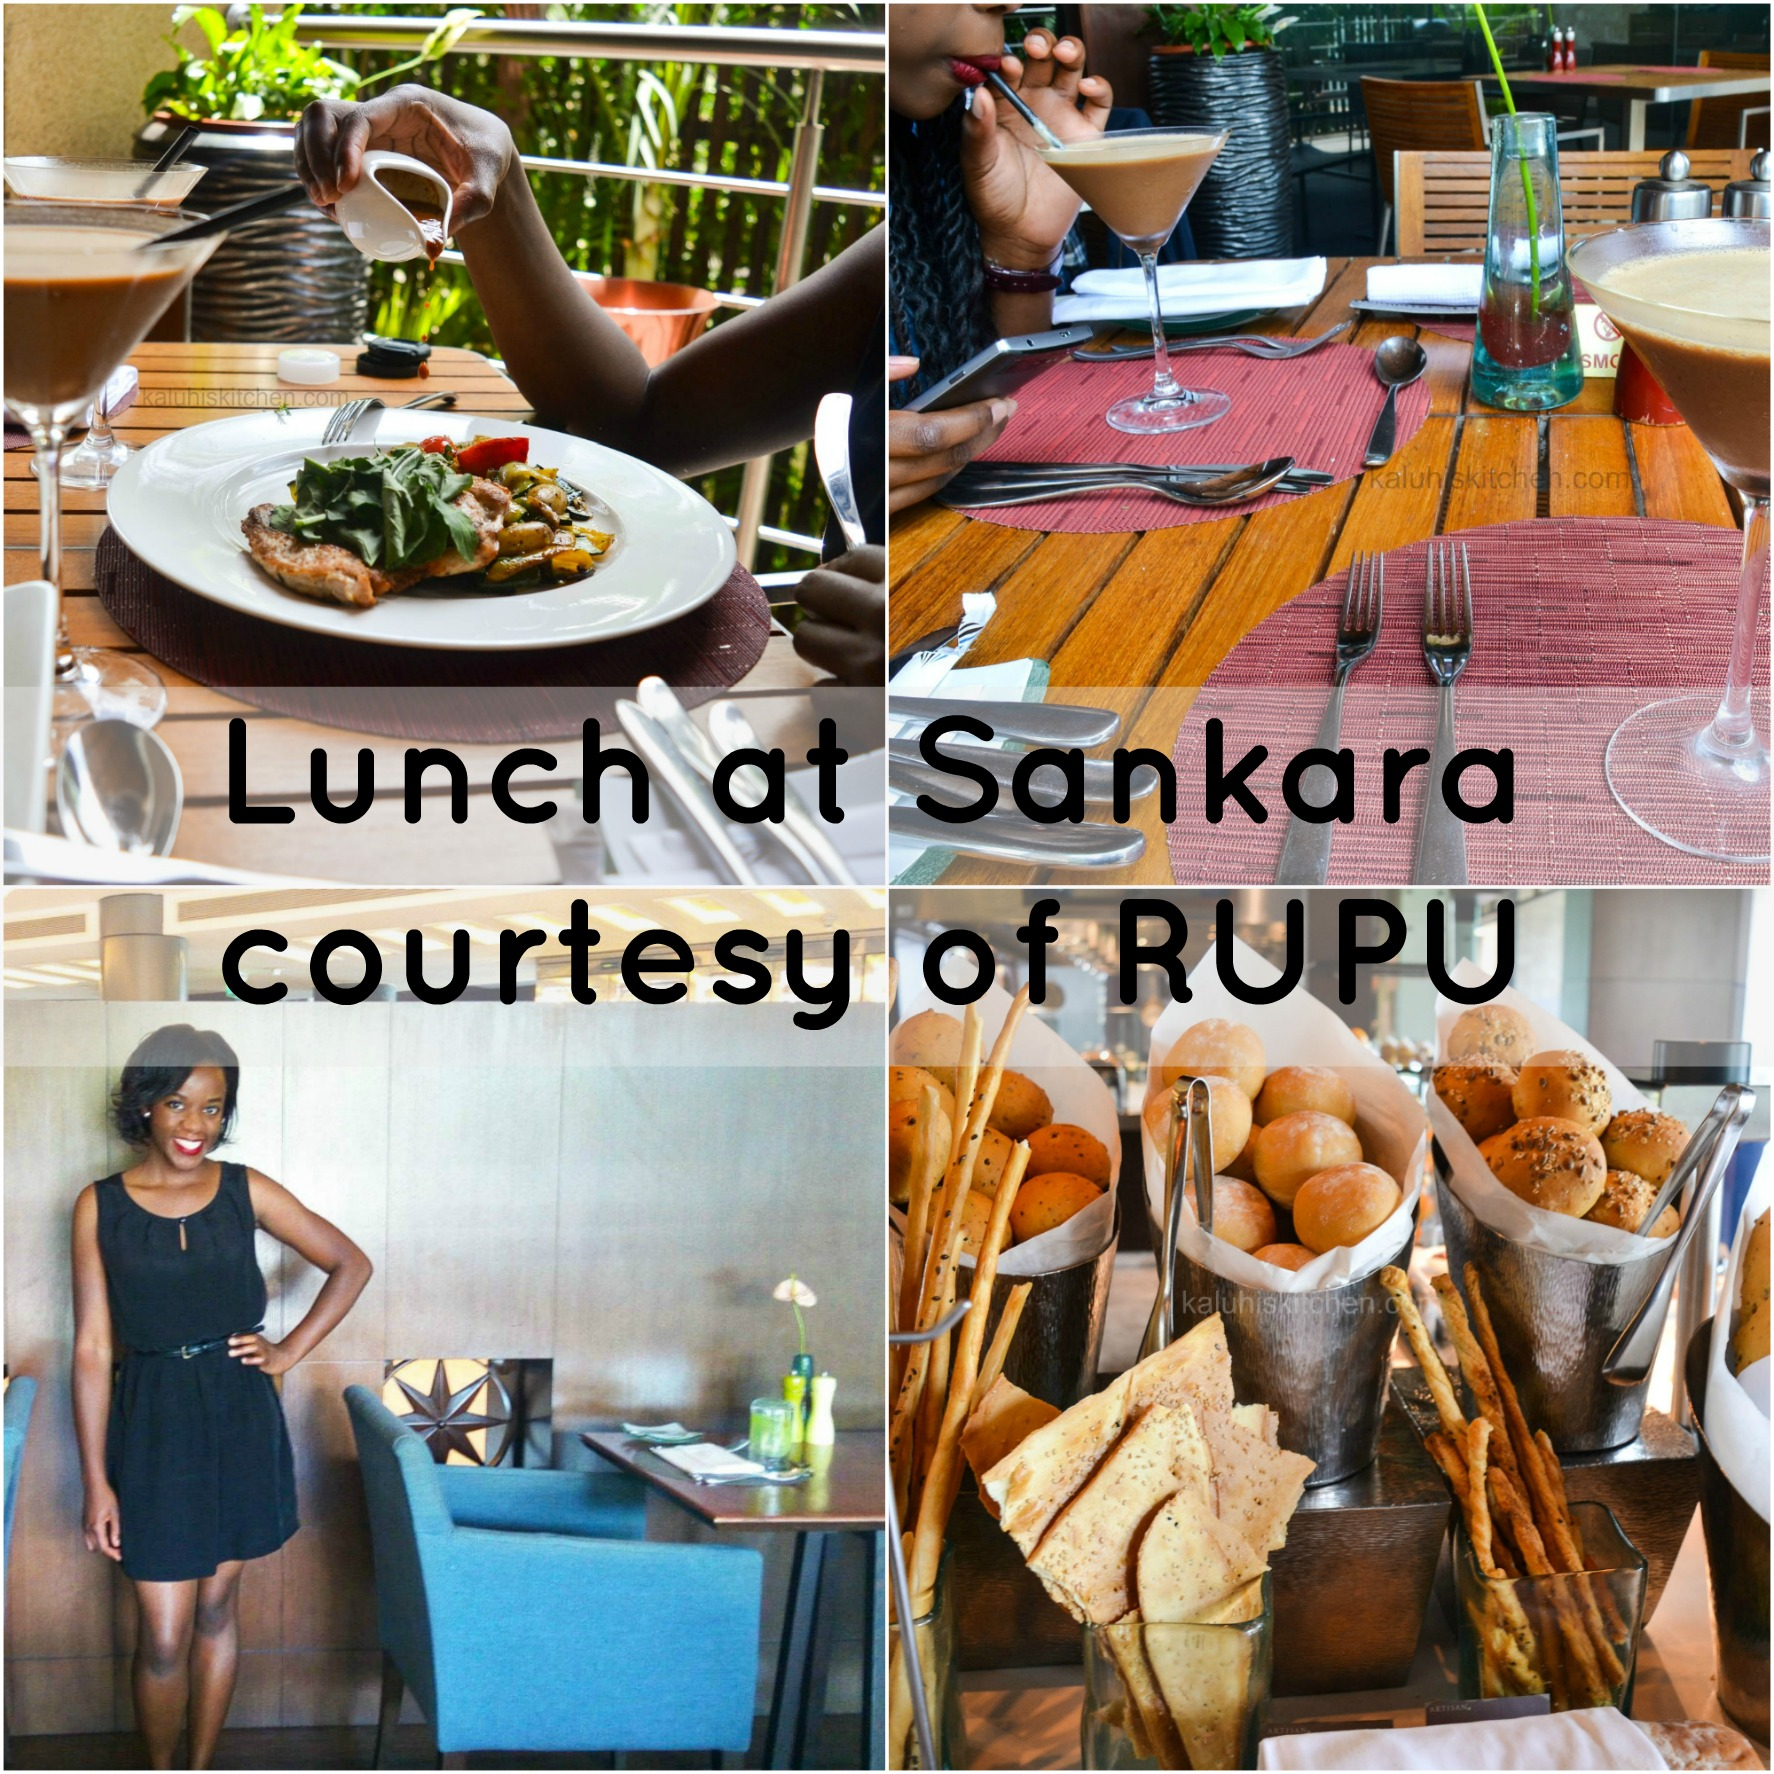 Best Nairobi Restaurants_Lunch at Sankara courtesy of RUPU Kenya as reviewed by kaluhi adagala of kaluhiskitchen.com